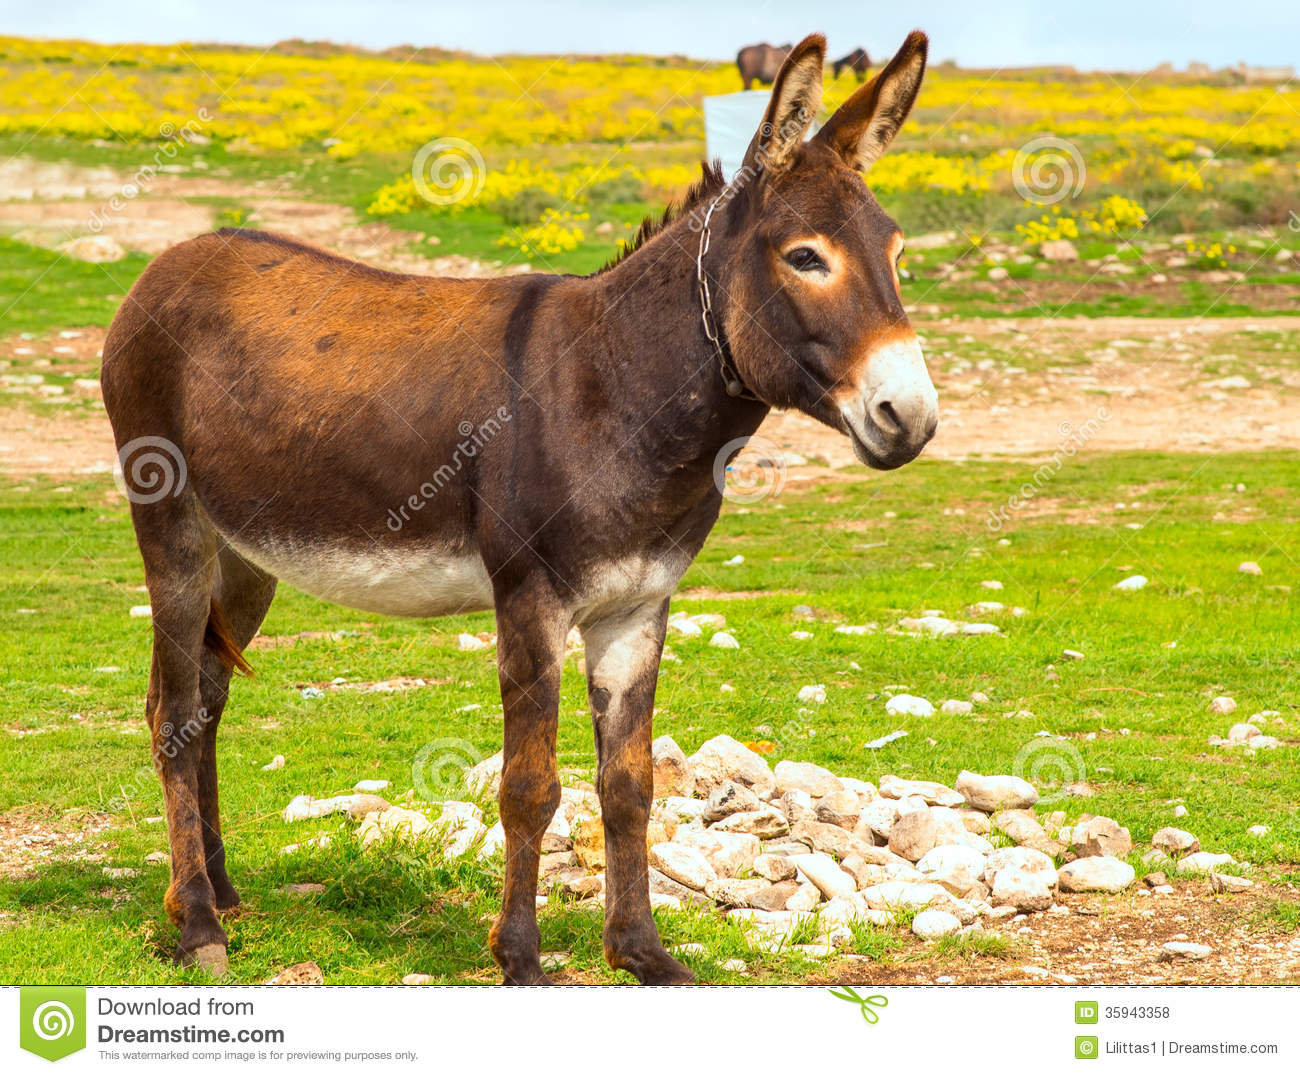 donkey farm animal brown color standing on field grass the donkey or